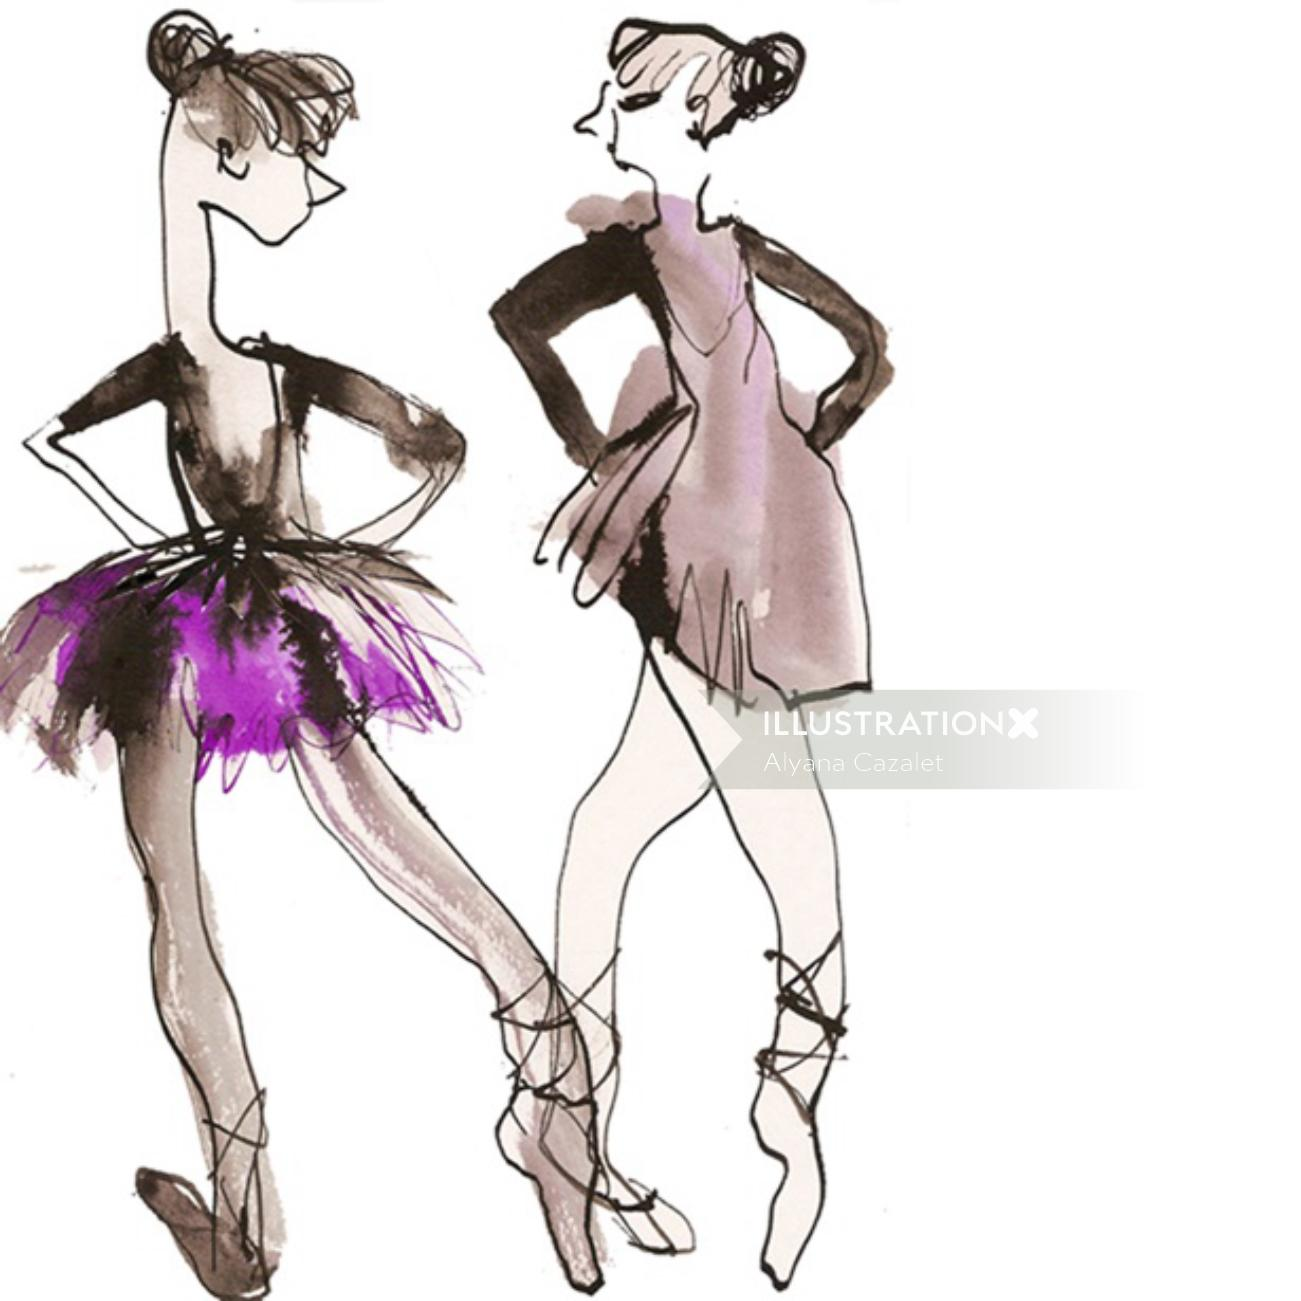 Ballet dancers illustration by Alyana Cazalet